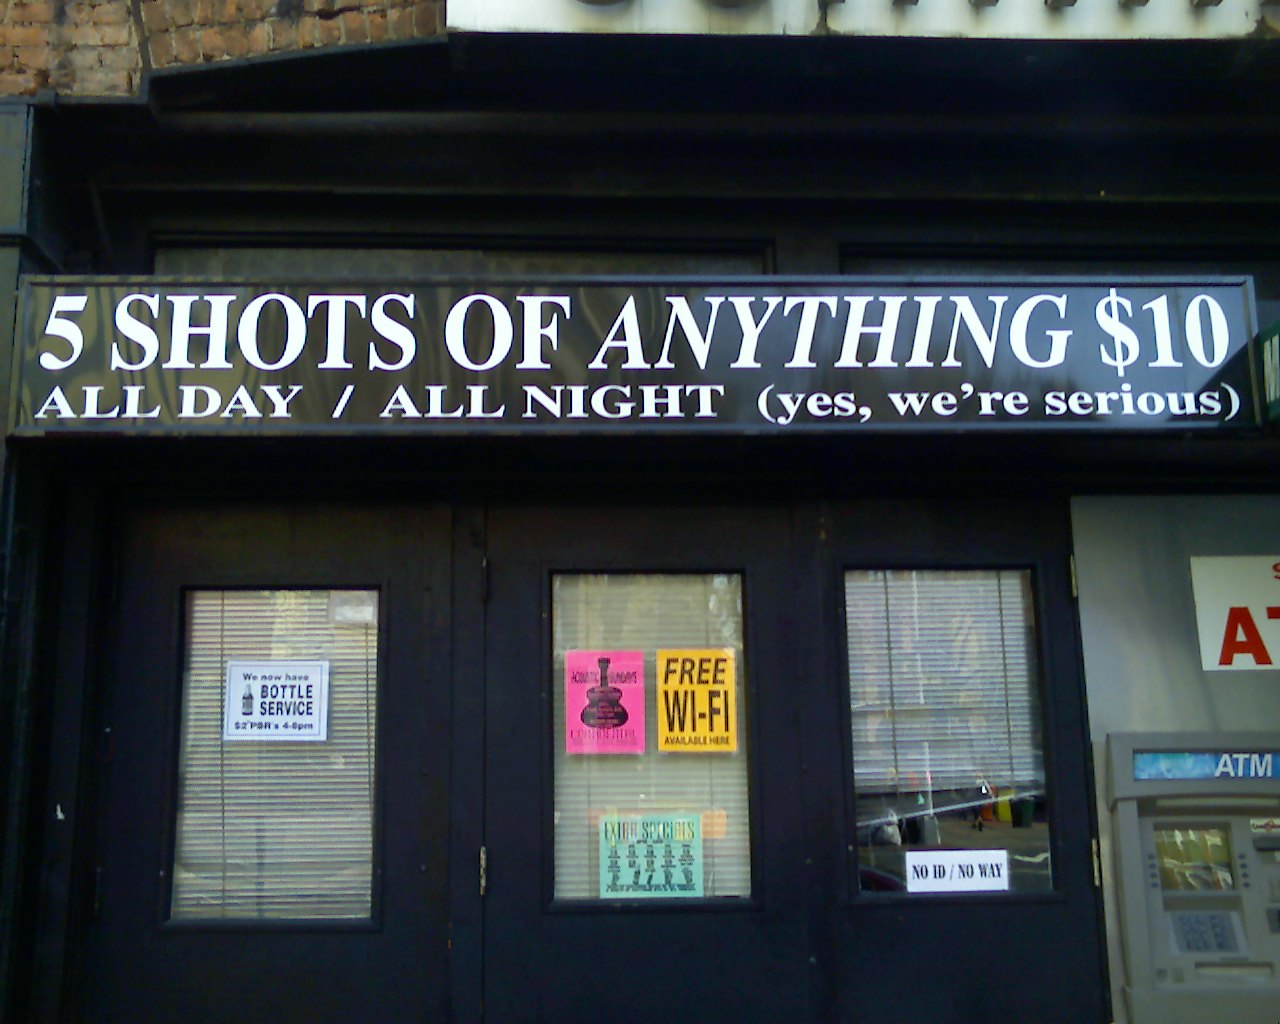 5 shots of anything $10